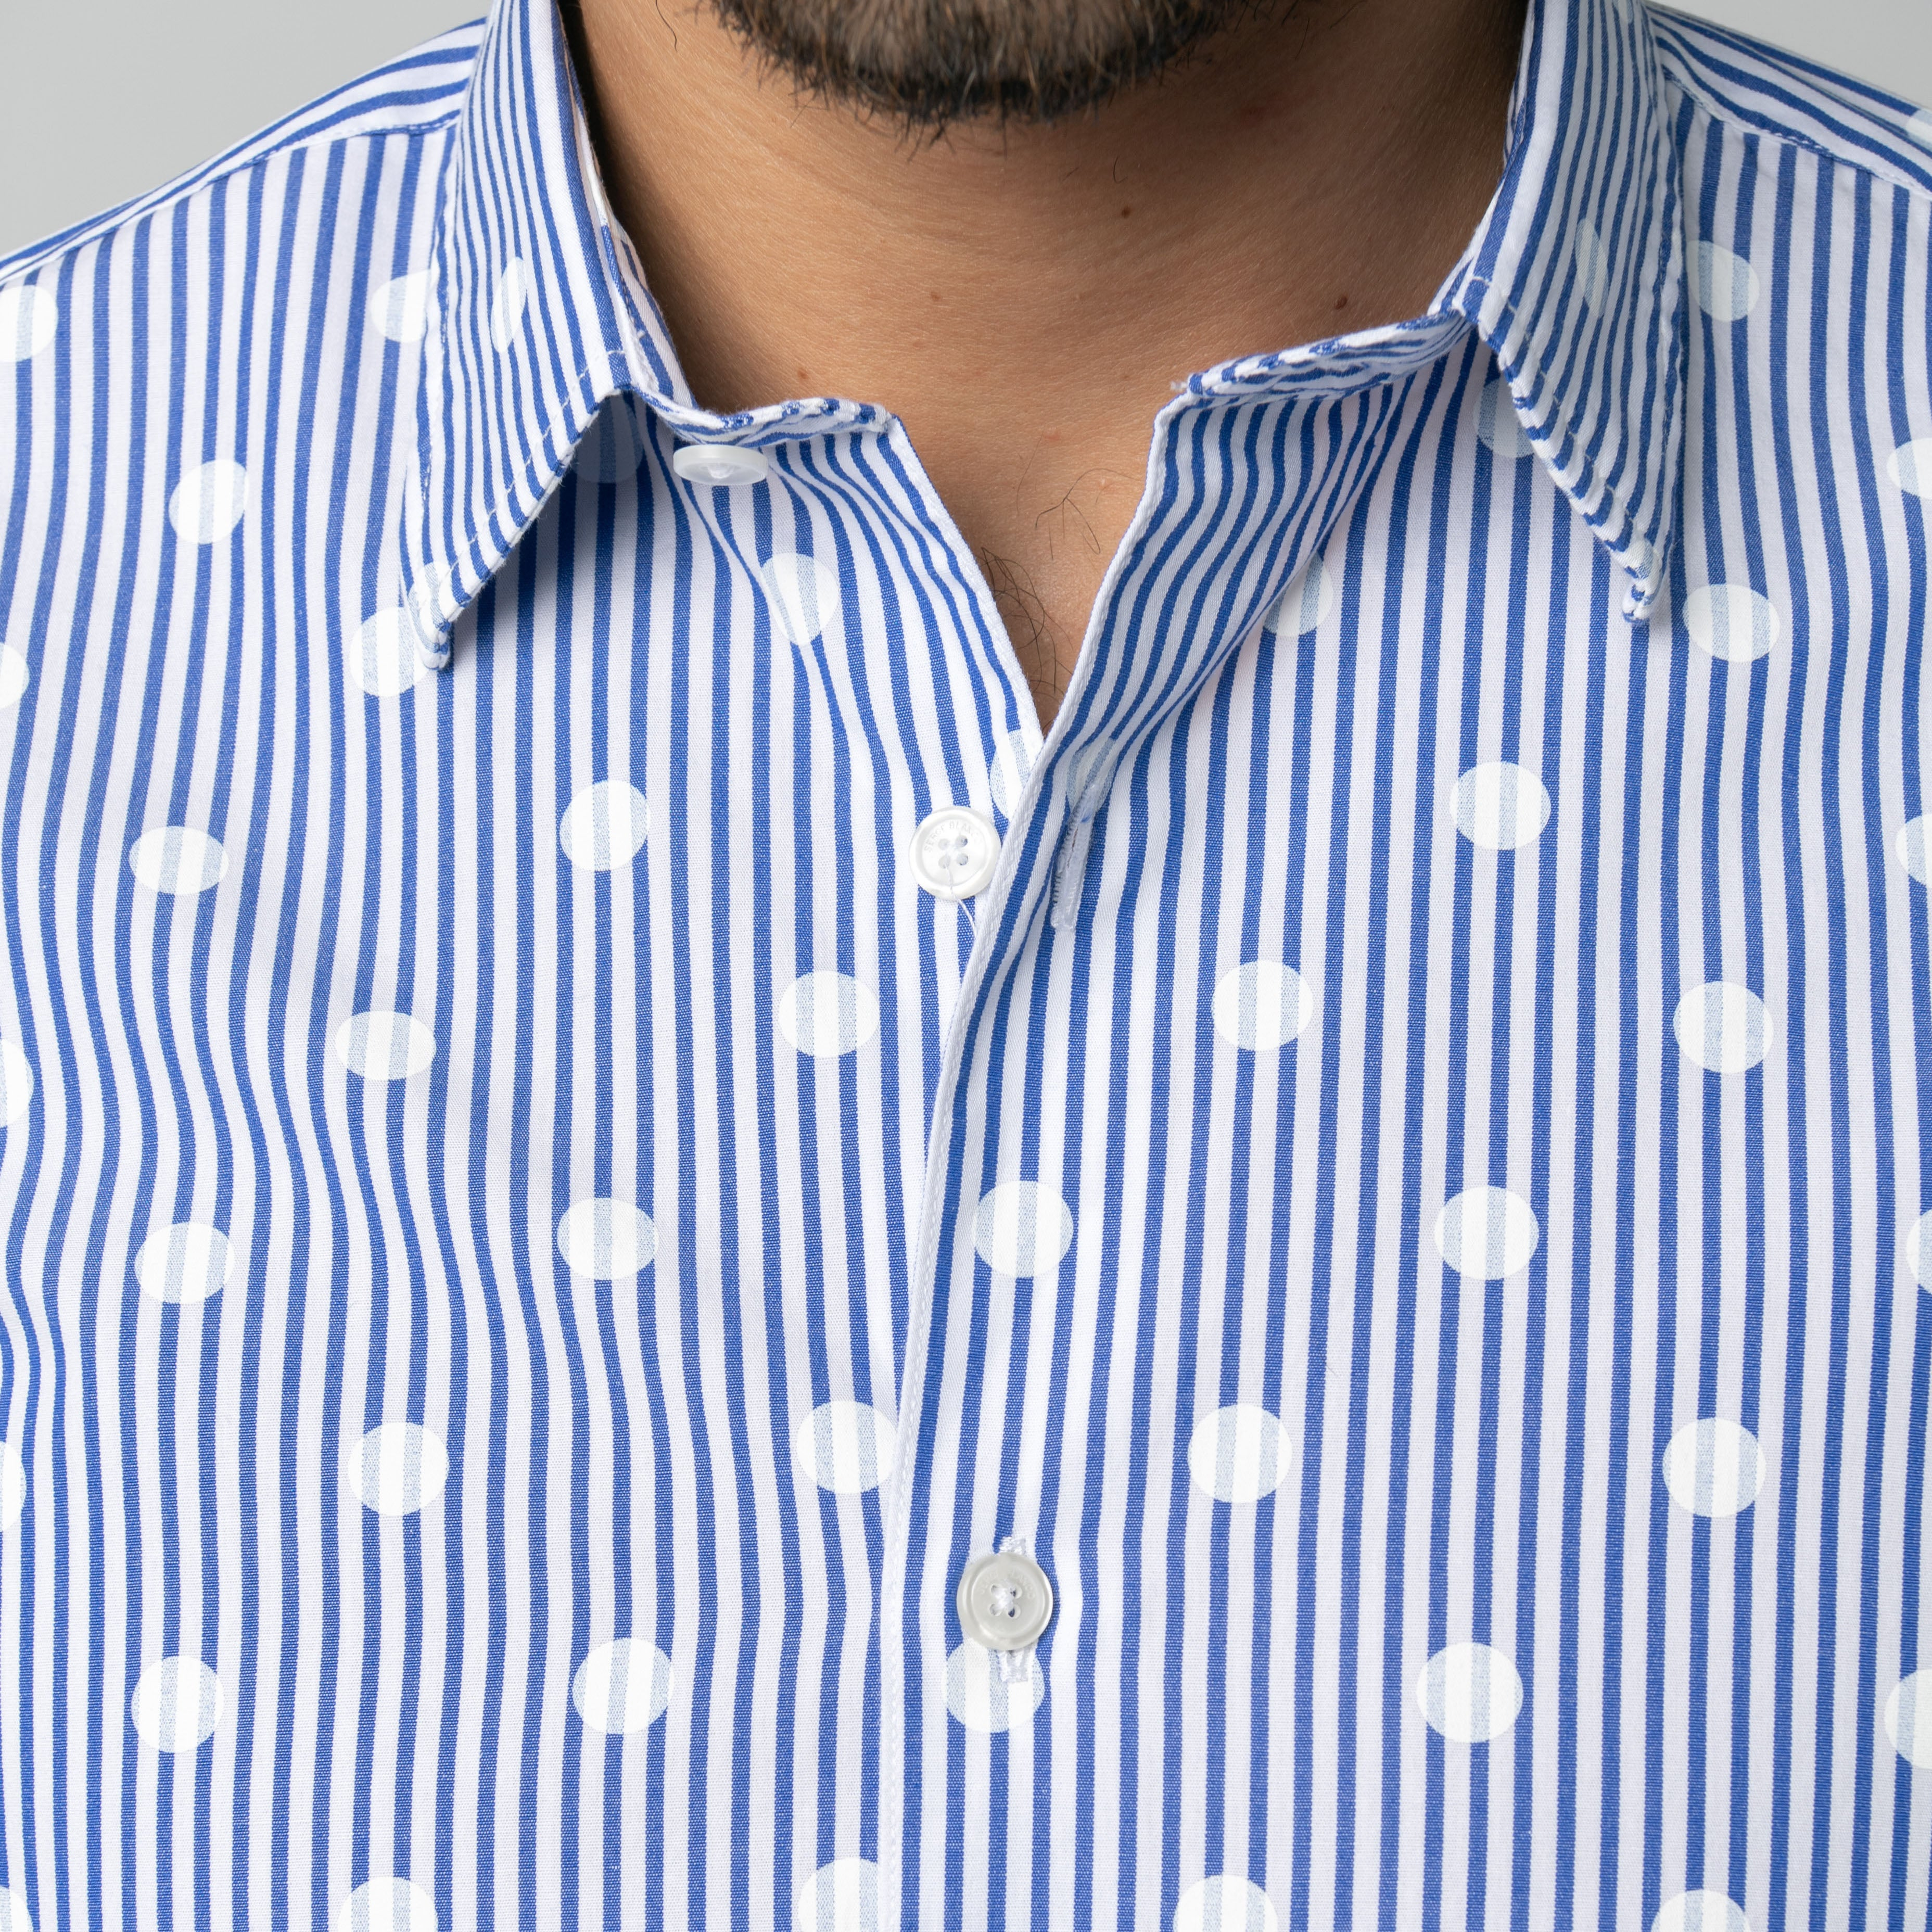 Galaxie White Dot Shirt: Blue Pinstripe